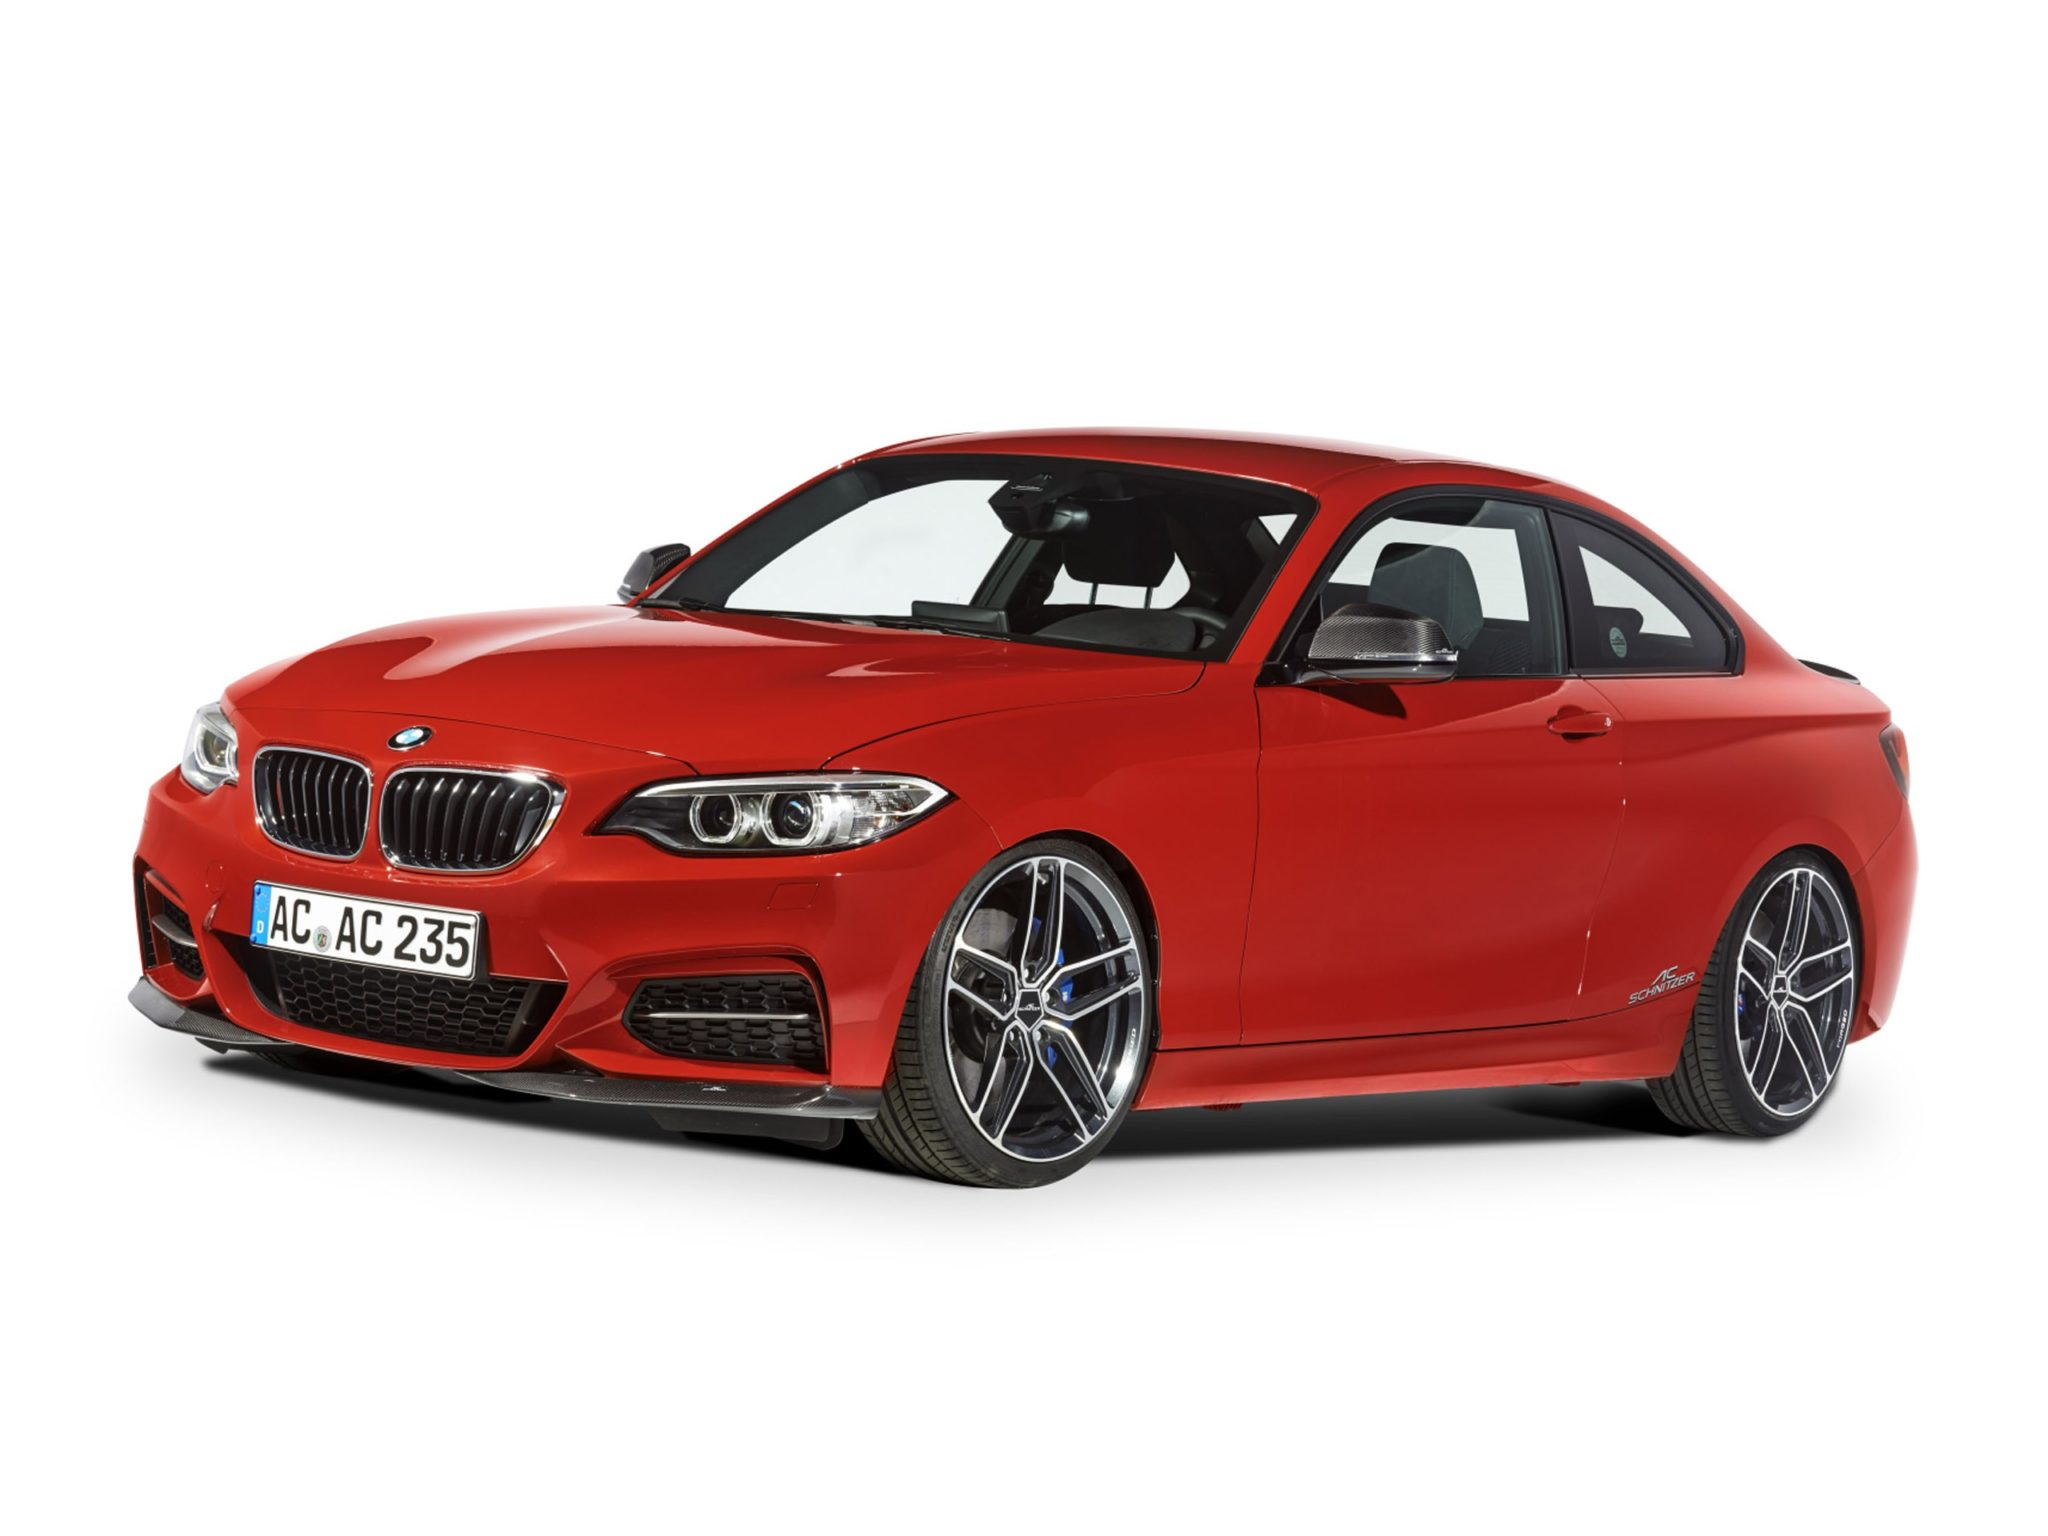 2014 AC-Schnitzer Bmw Serie 2 Coupe